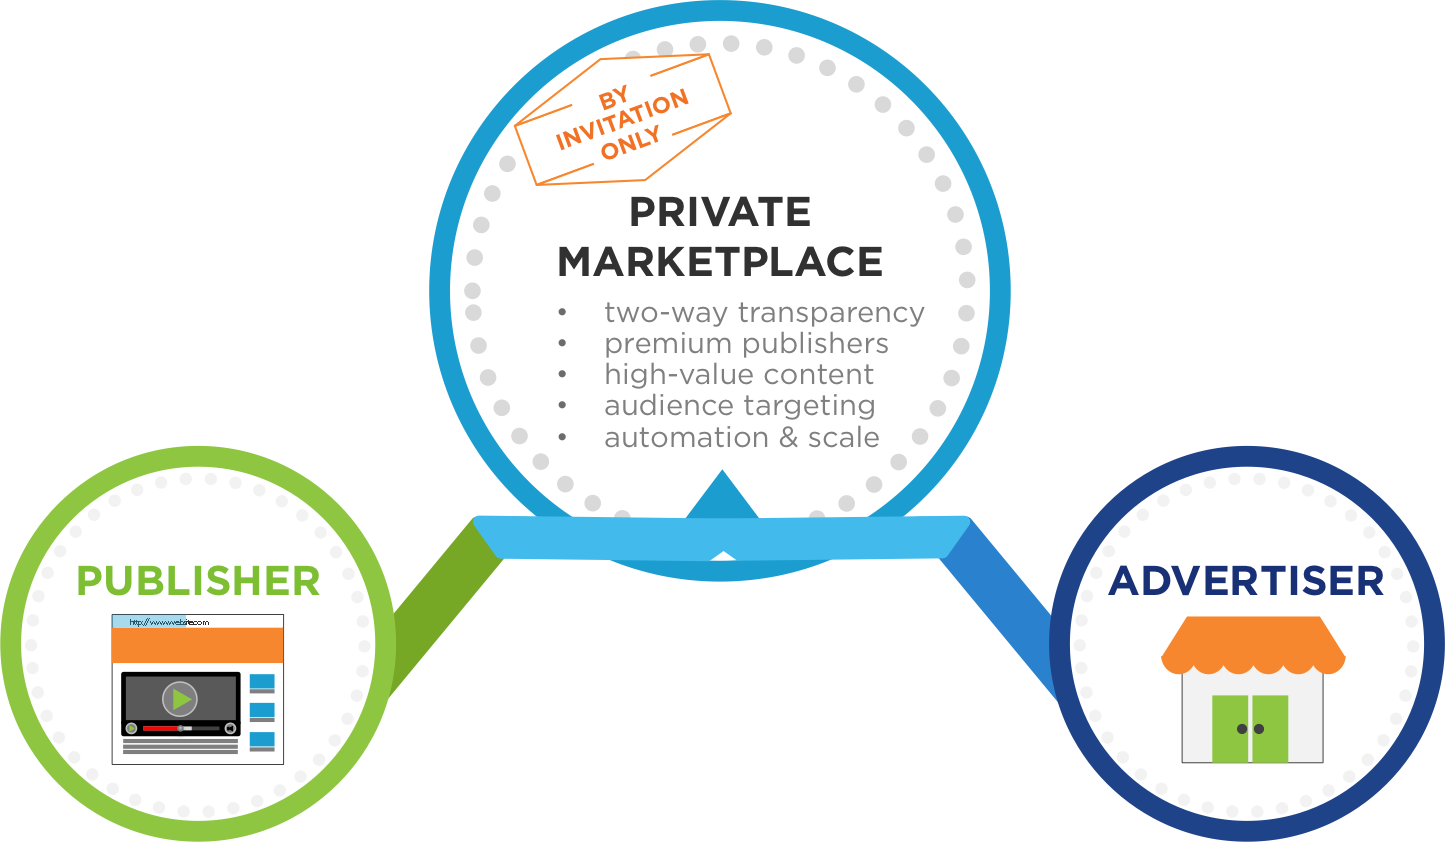 private marketplace definition, private marketplace pmp